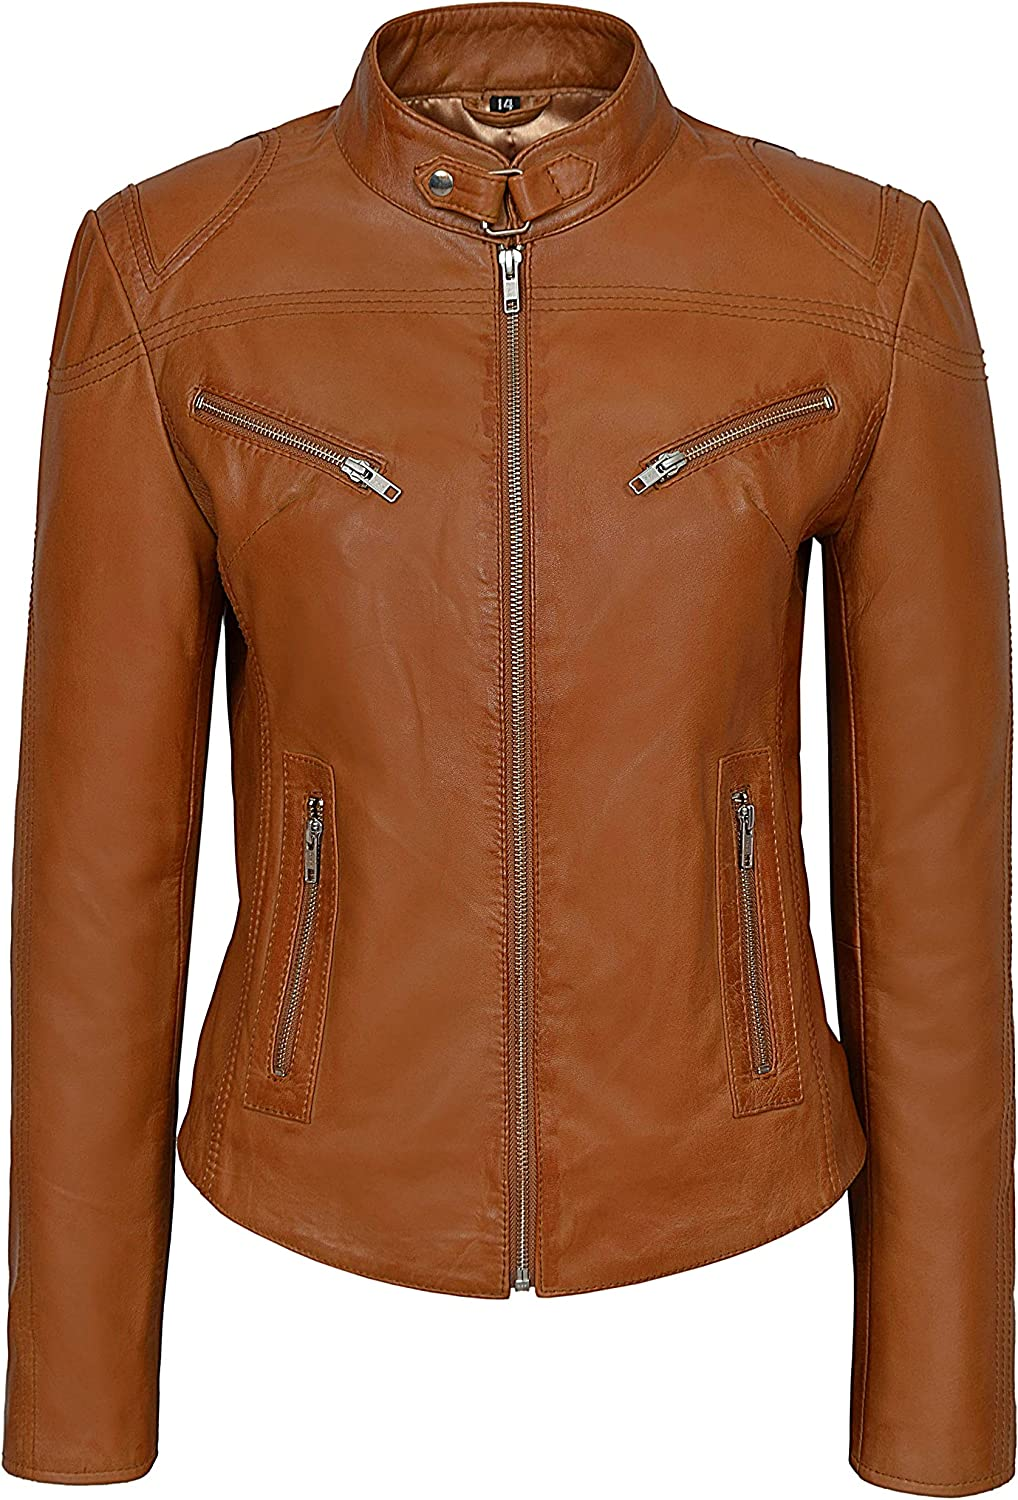 Speed Ladies Leather Jacket Tan Retro Fitted Biker Style Real Lambskin SR01